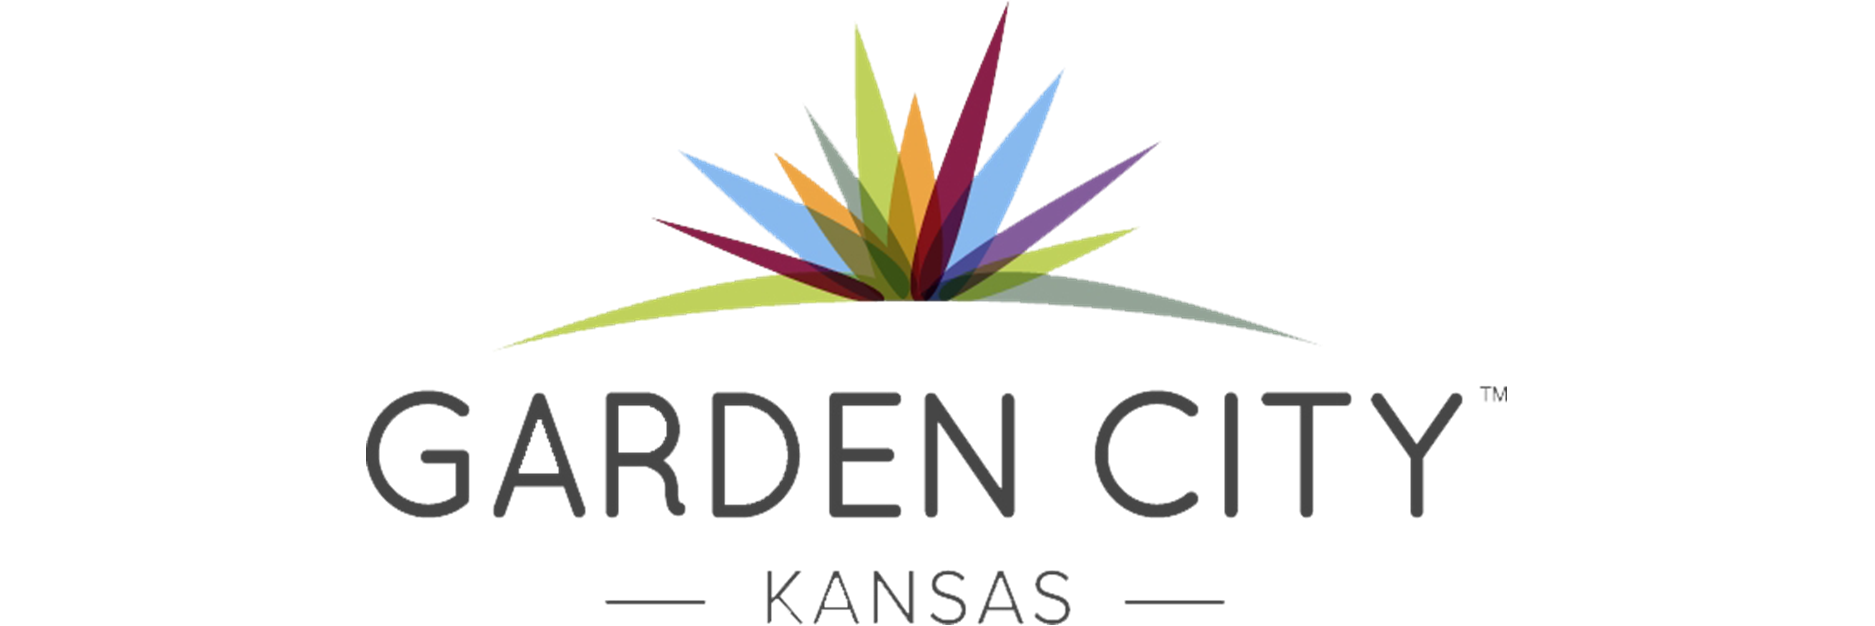 City-of-Garden-City_Website-Icon_1200x400.png